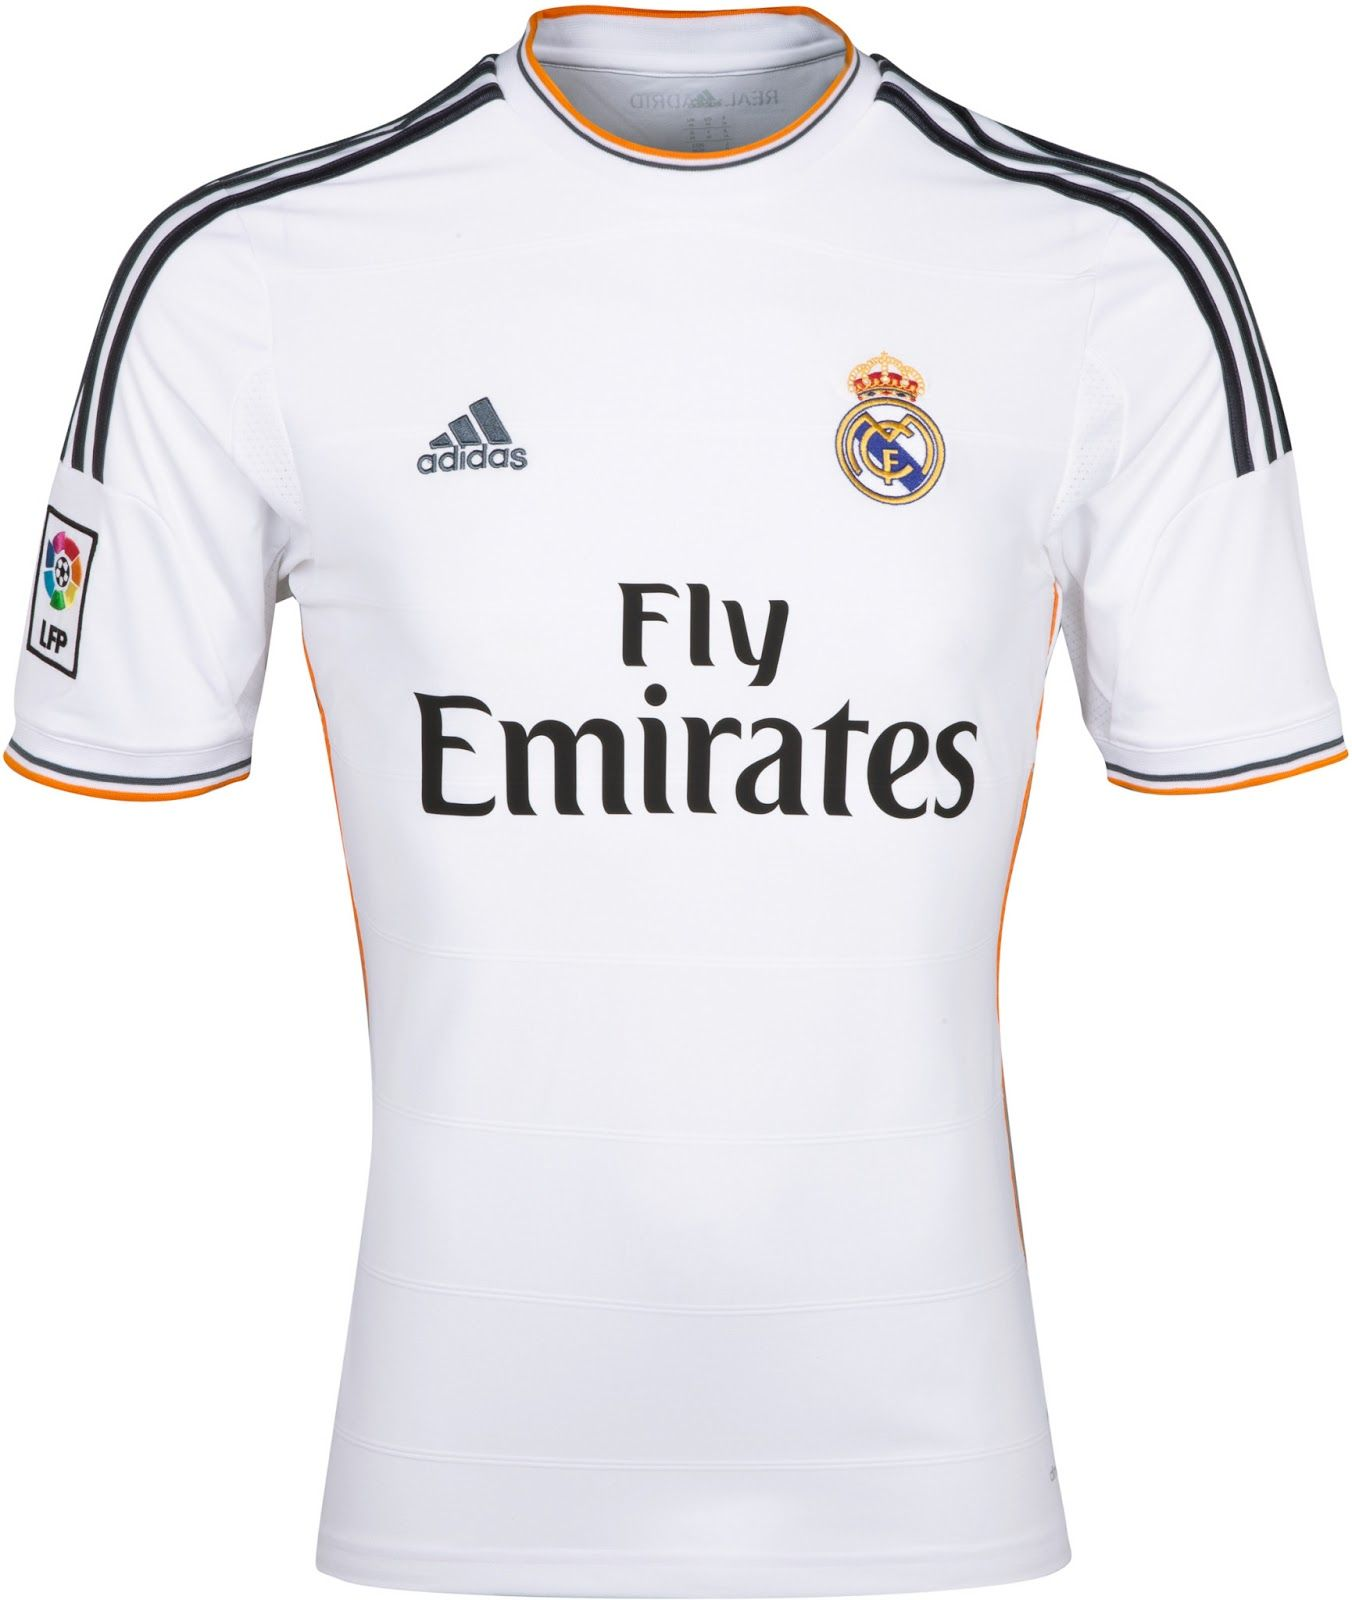 Camiseta Real Madrid  6b8fa2d867faa